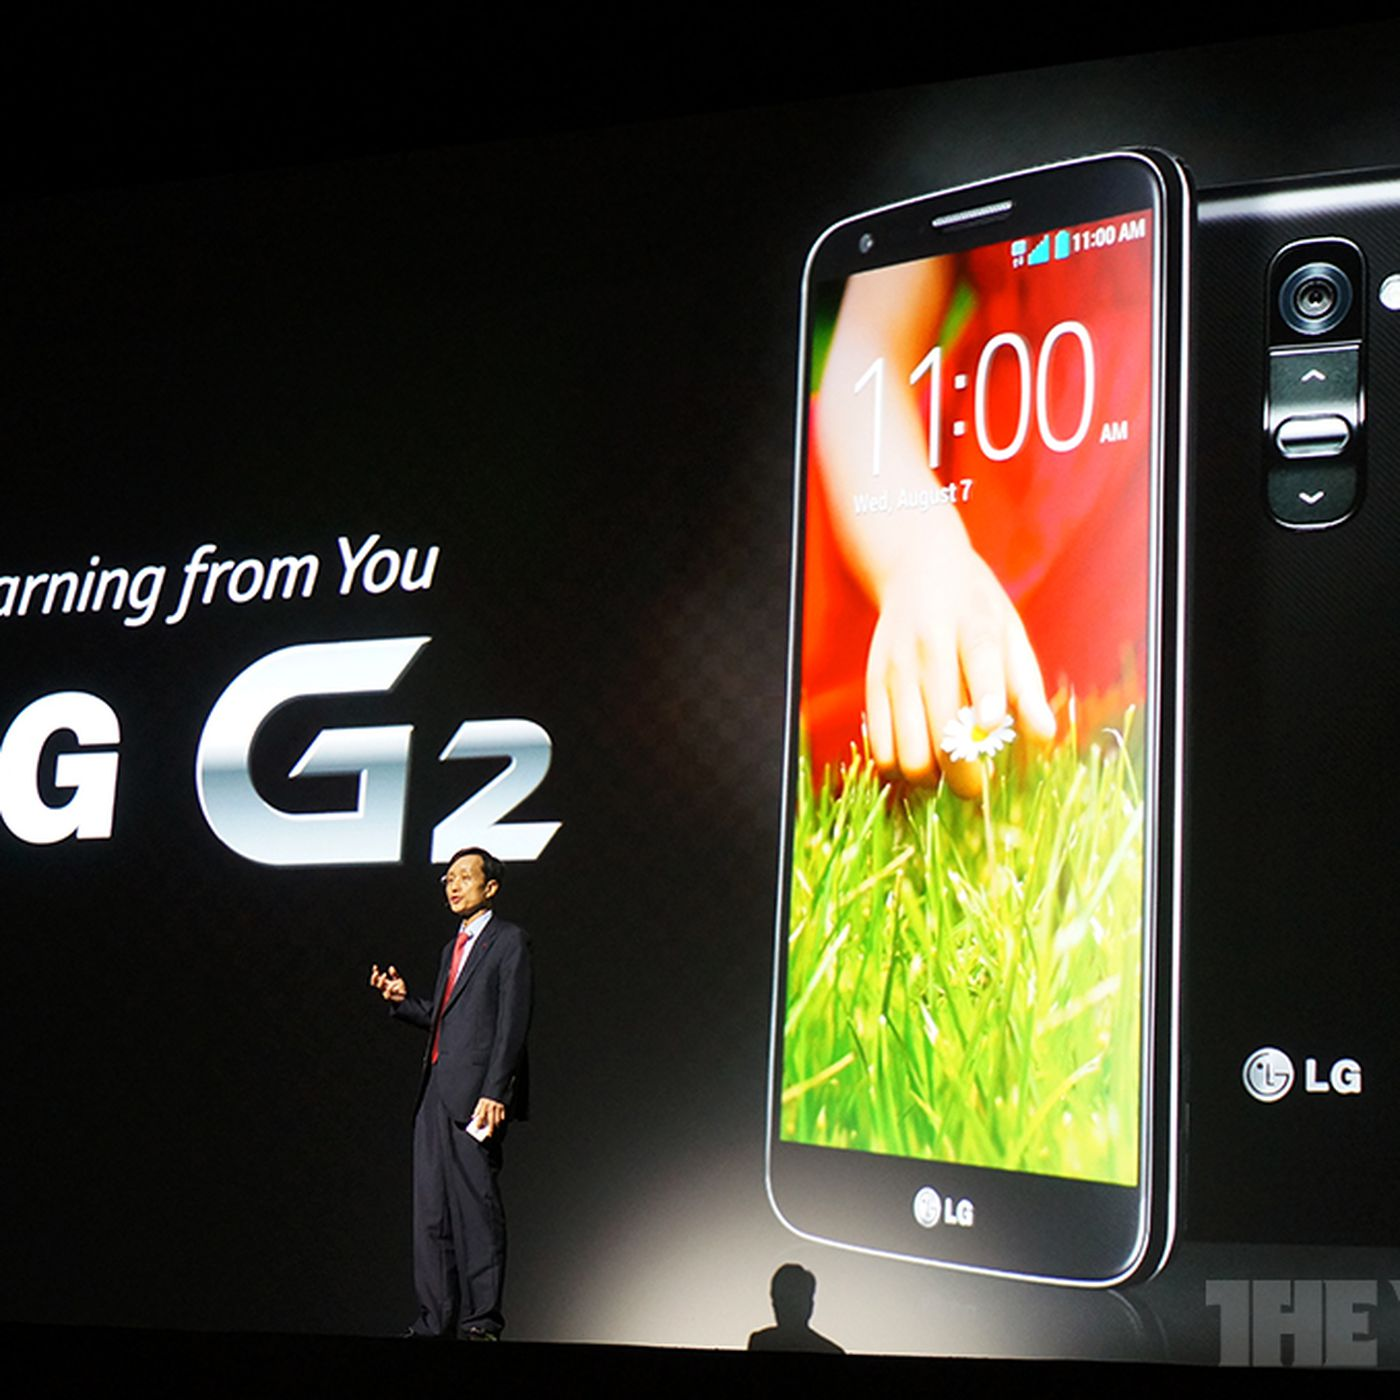 20 injured at ill-conceived LG G2 promotional event - The Verge